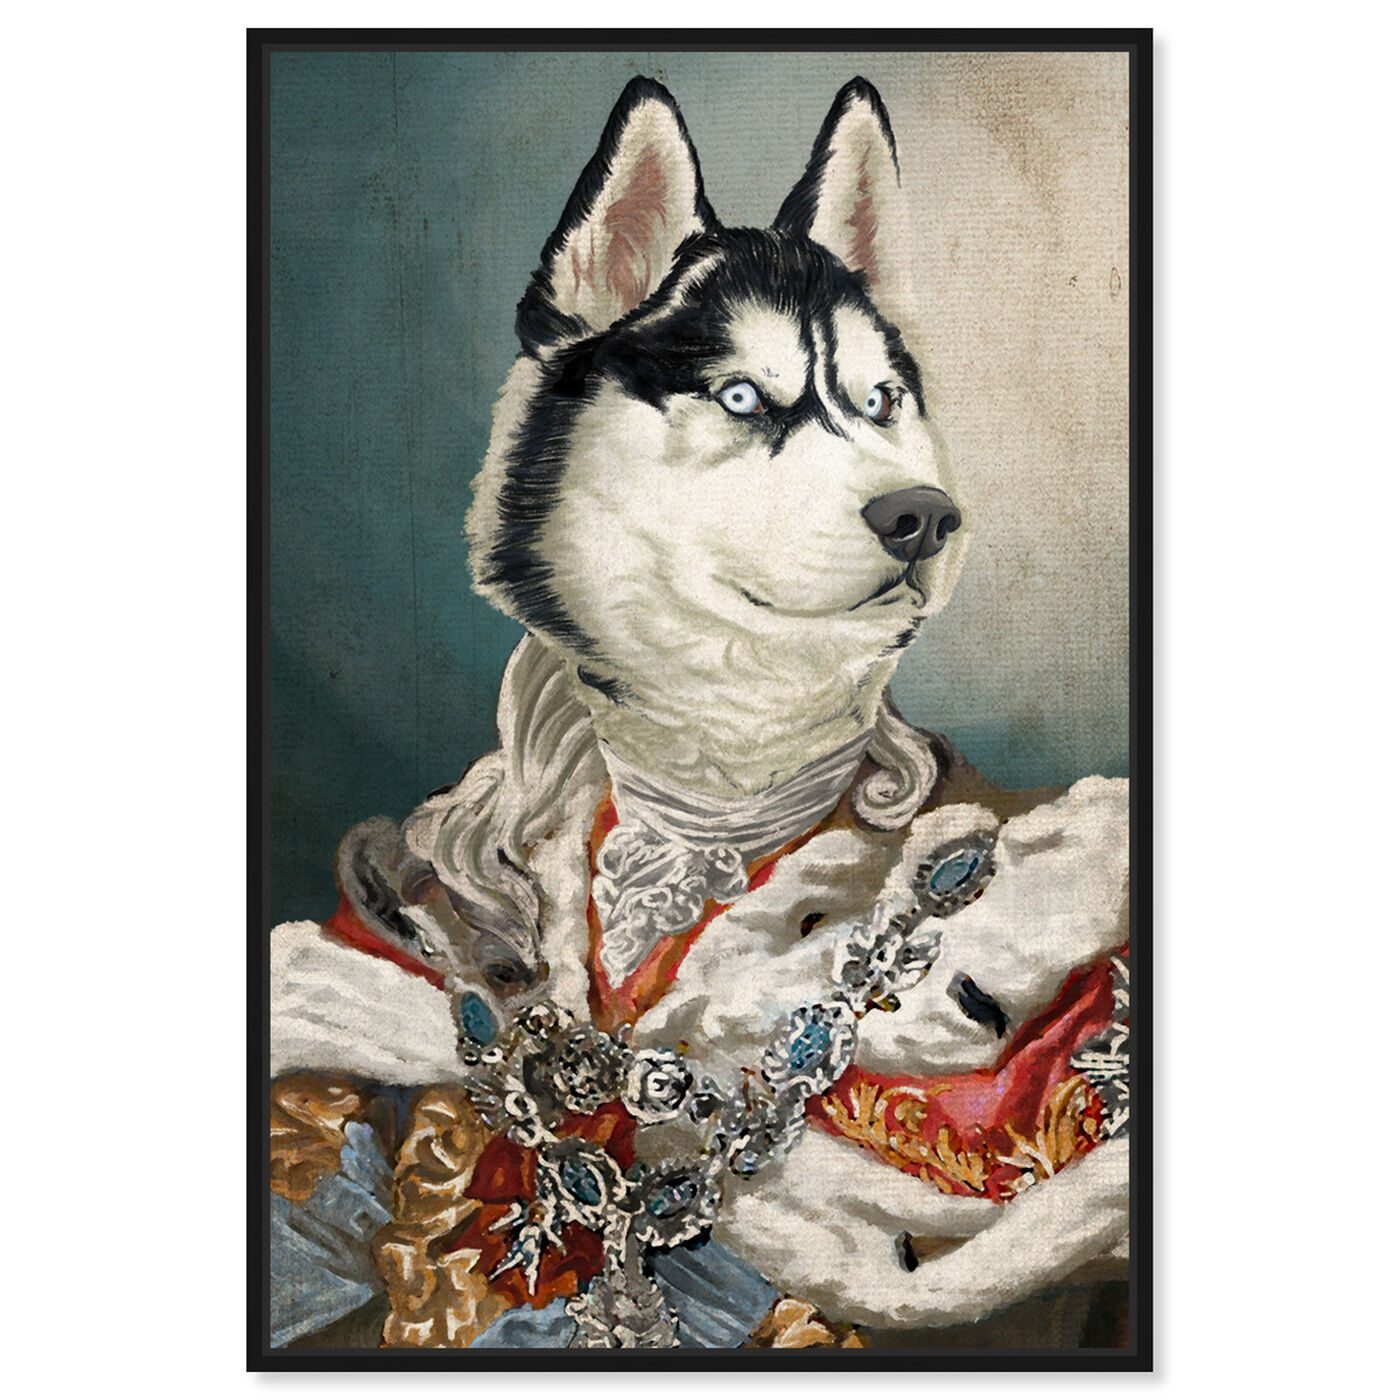 Front view of Royal Husky featuring animals and dogs and puppies art.